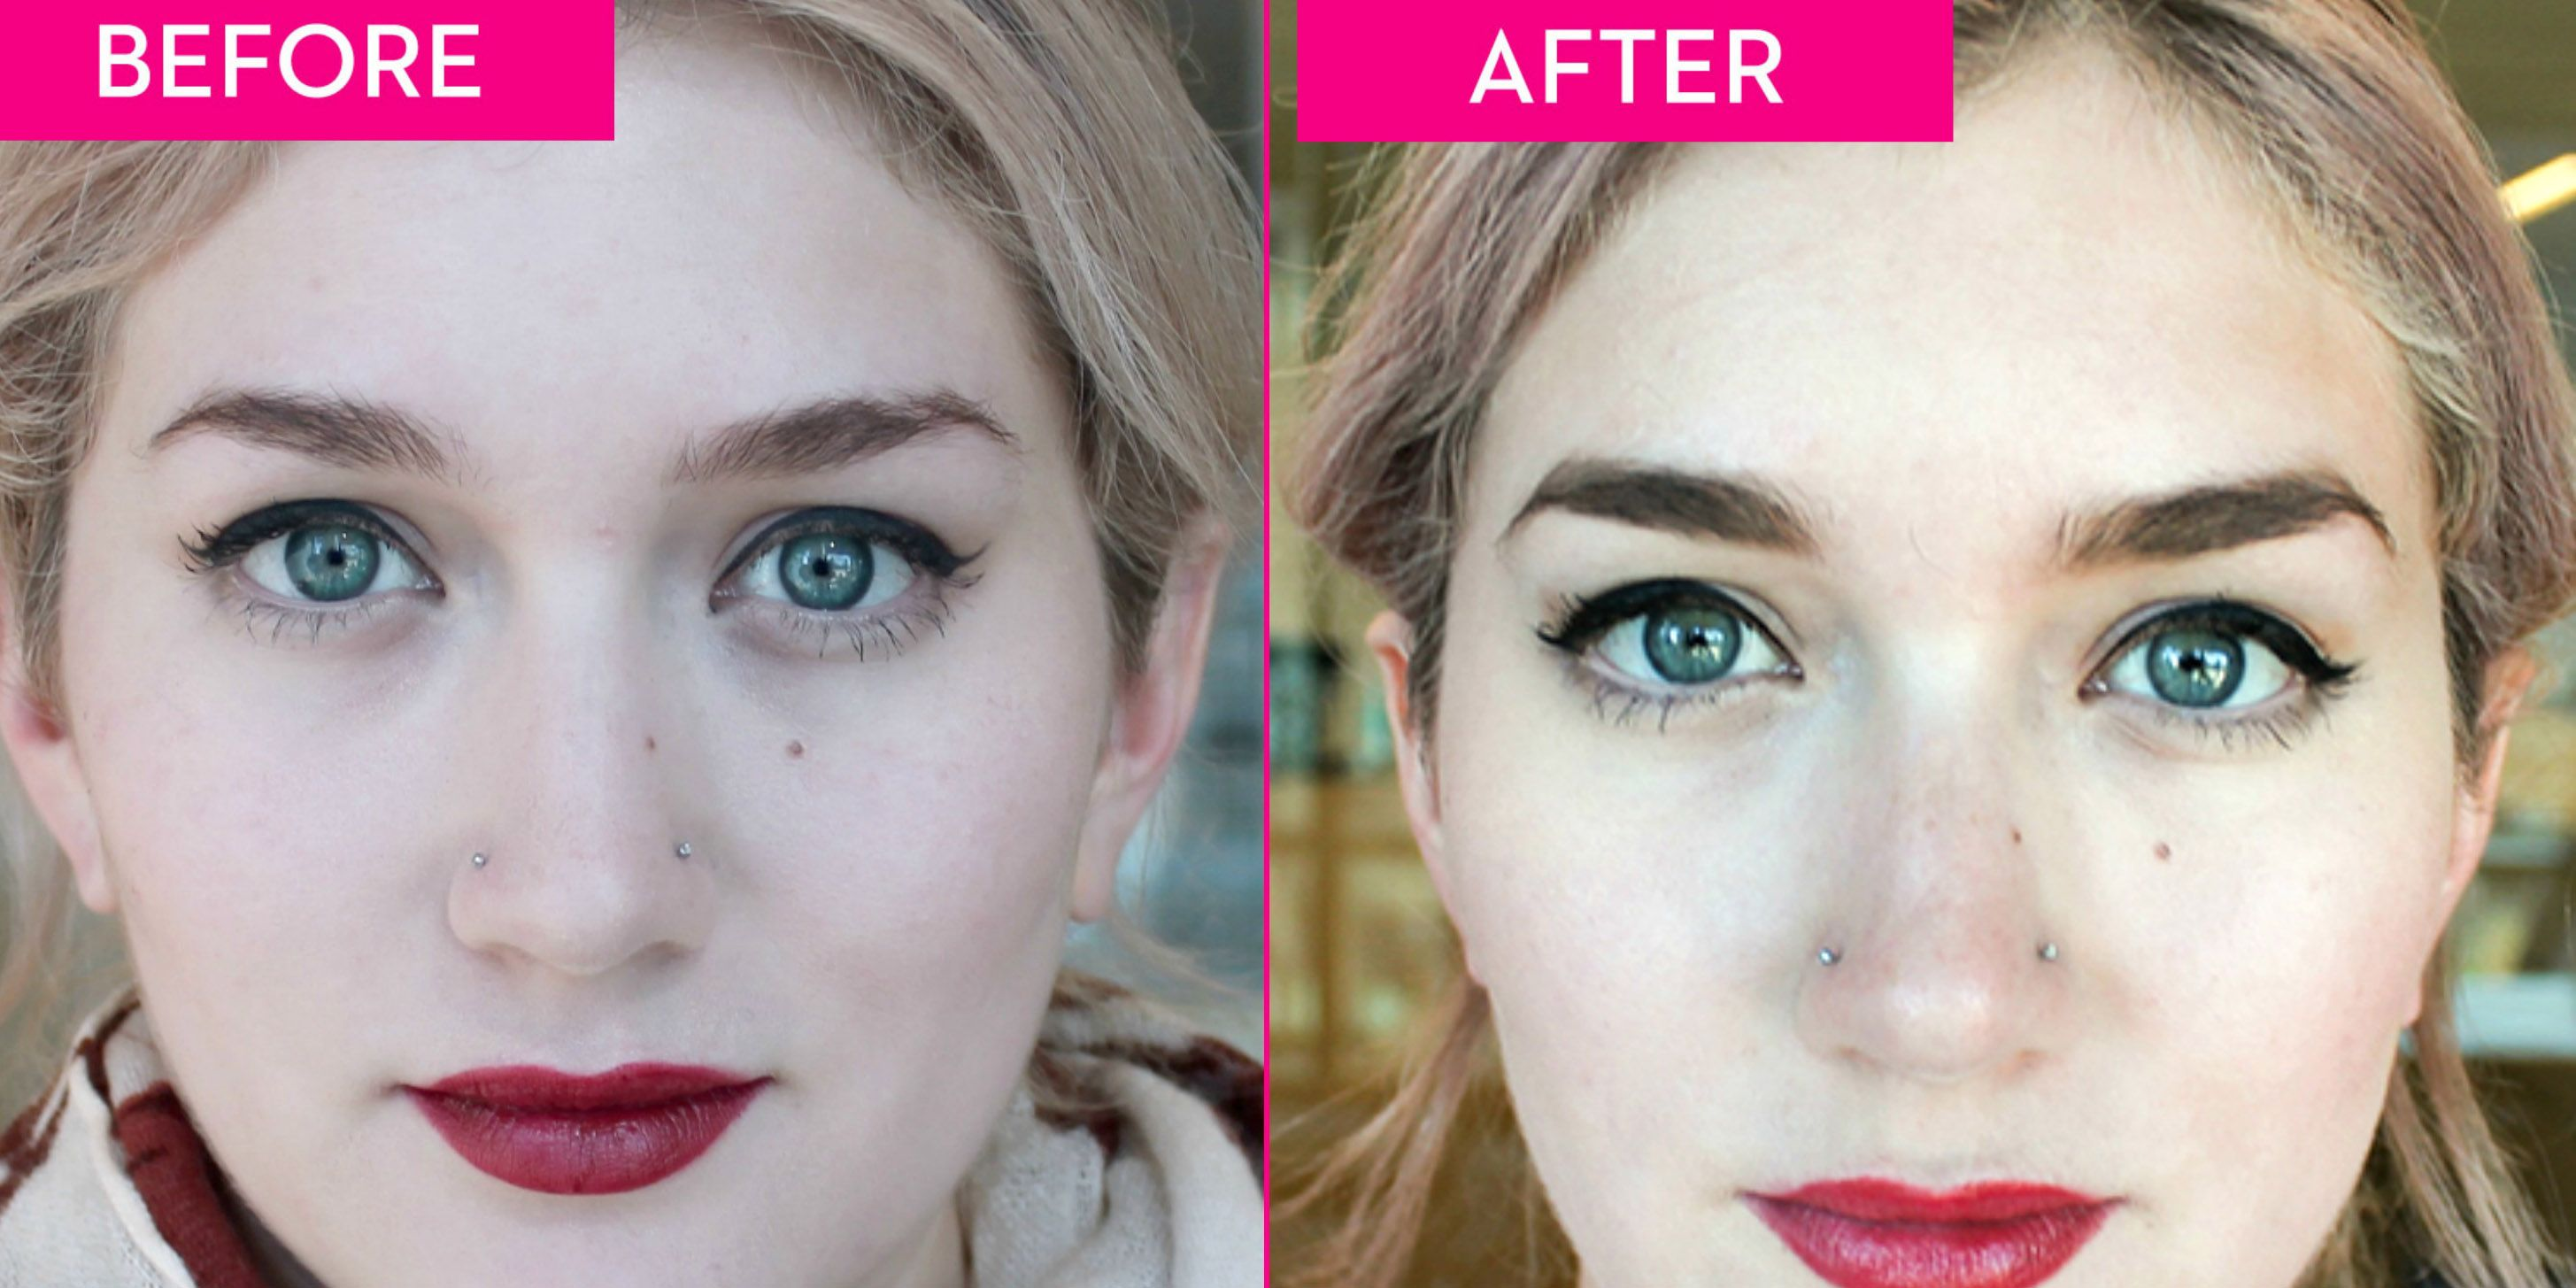 4 Eyebrow Makeovers Before And After Proof That Brows Totally Change Your Face